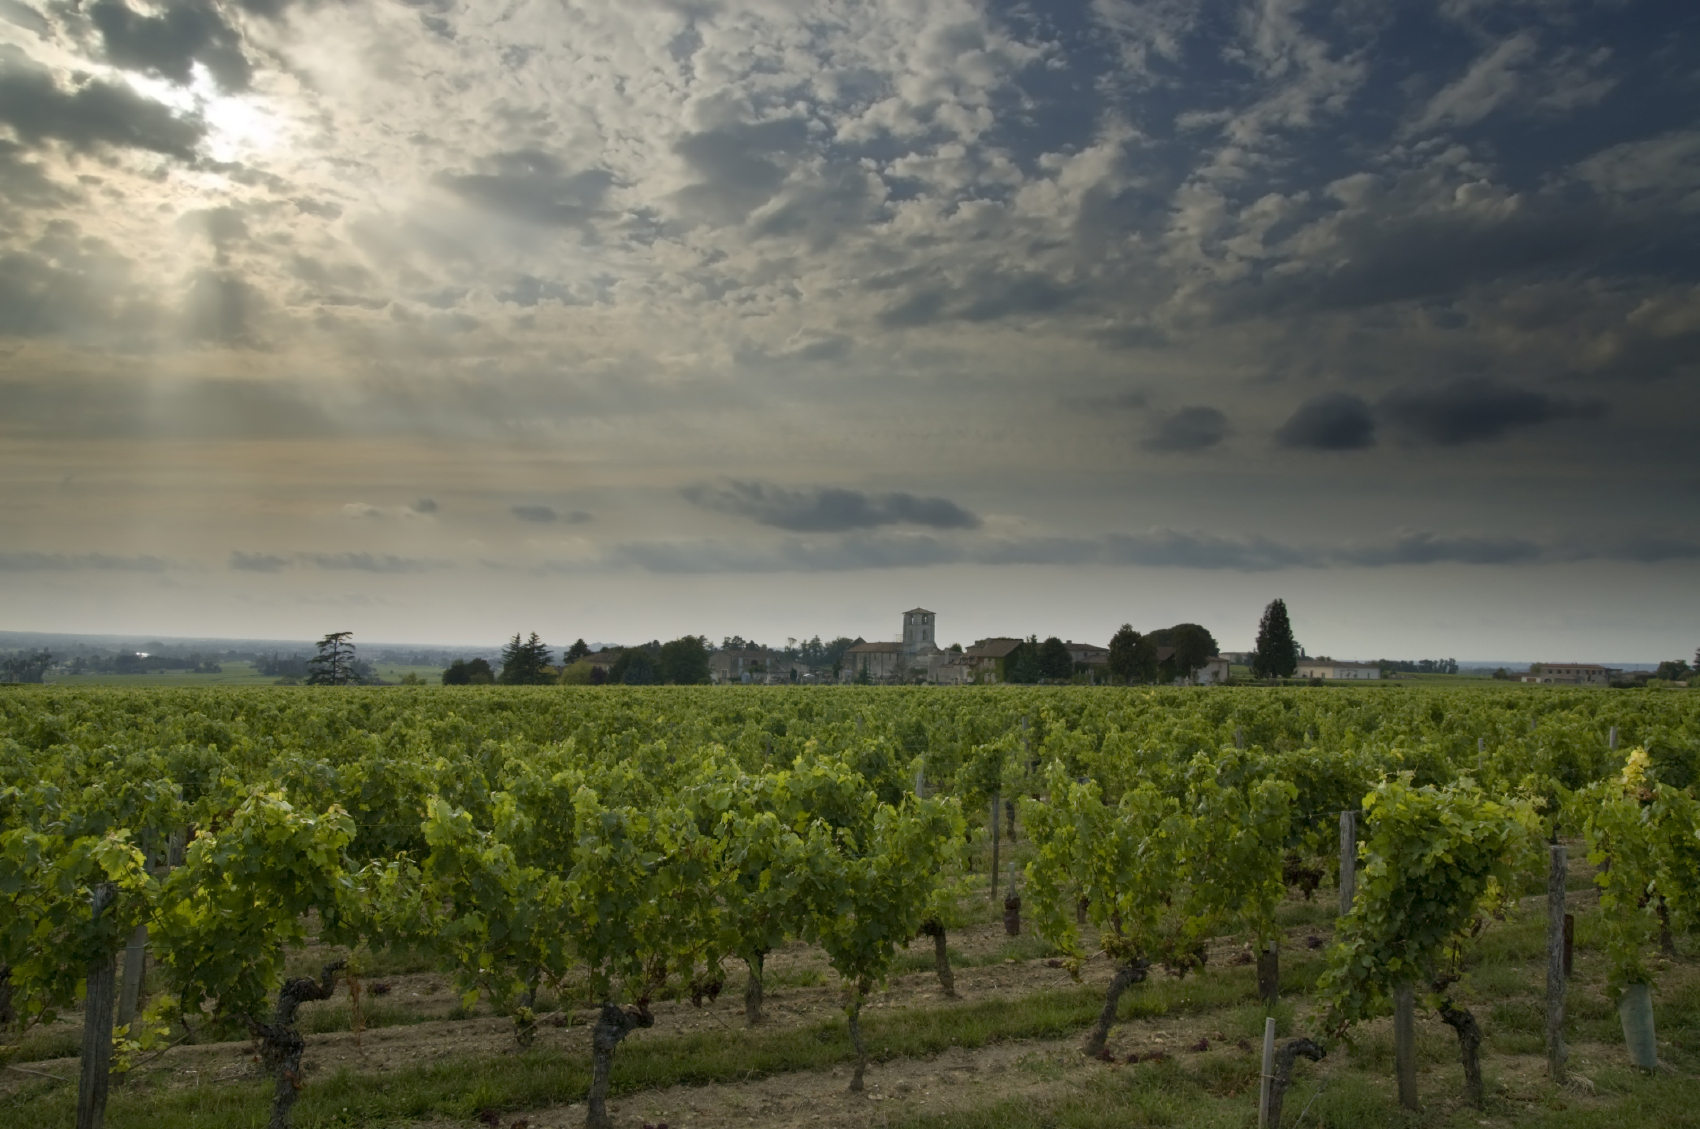 France leads global race for wine production and sales